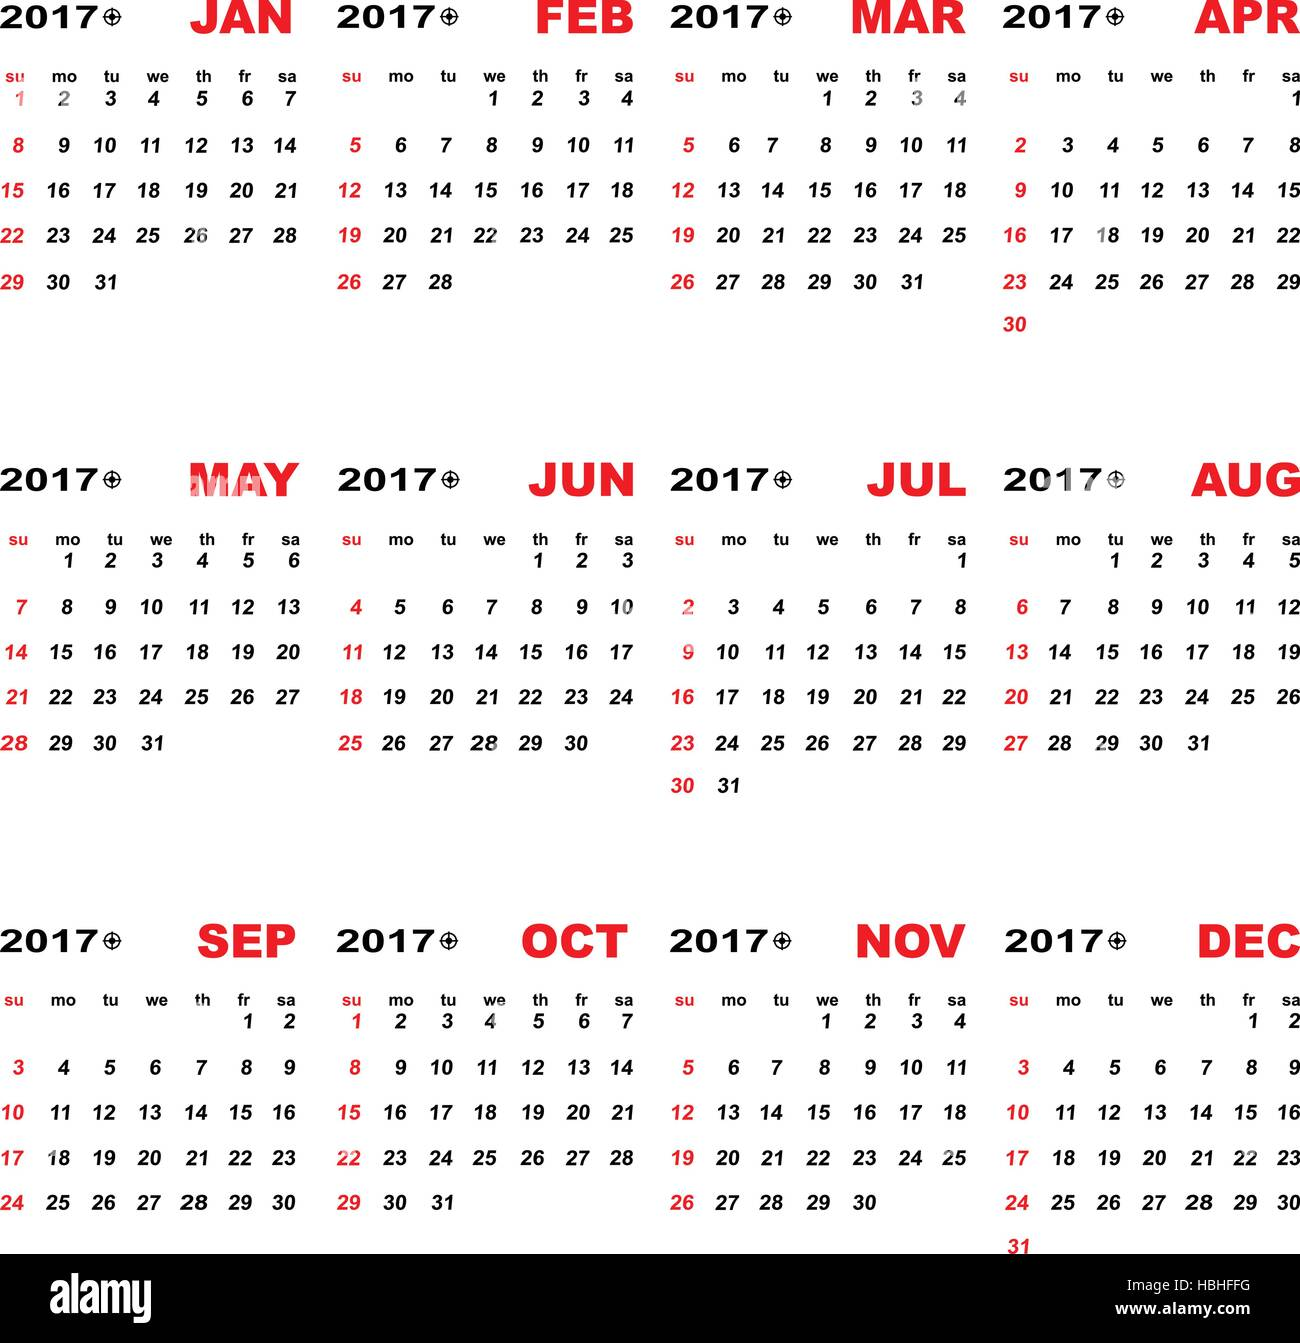 2017 calendar template for business plan stock vector stock vector 2017 calendar template for business plan stock vector accmission Image collections